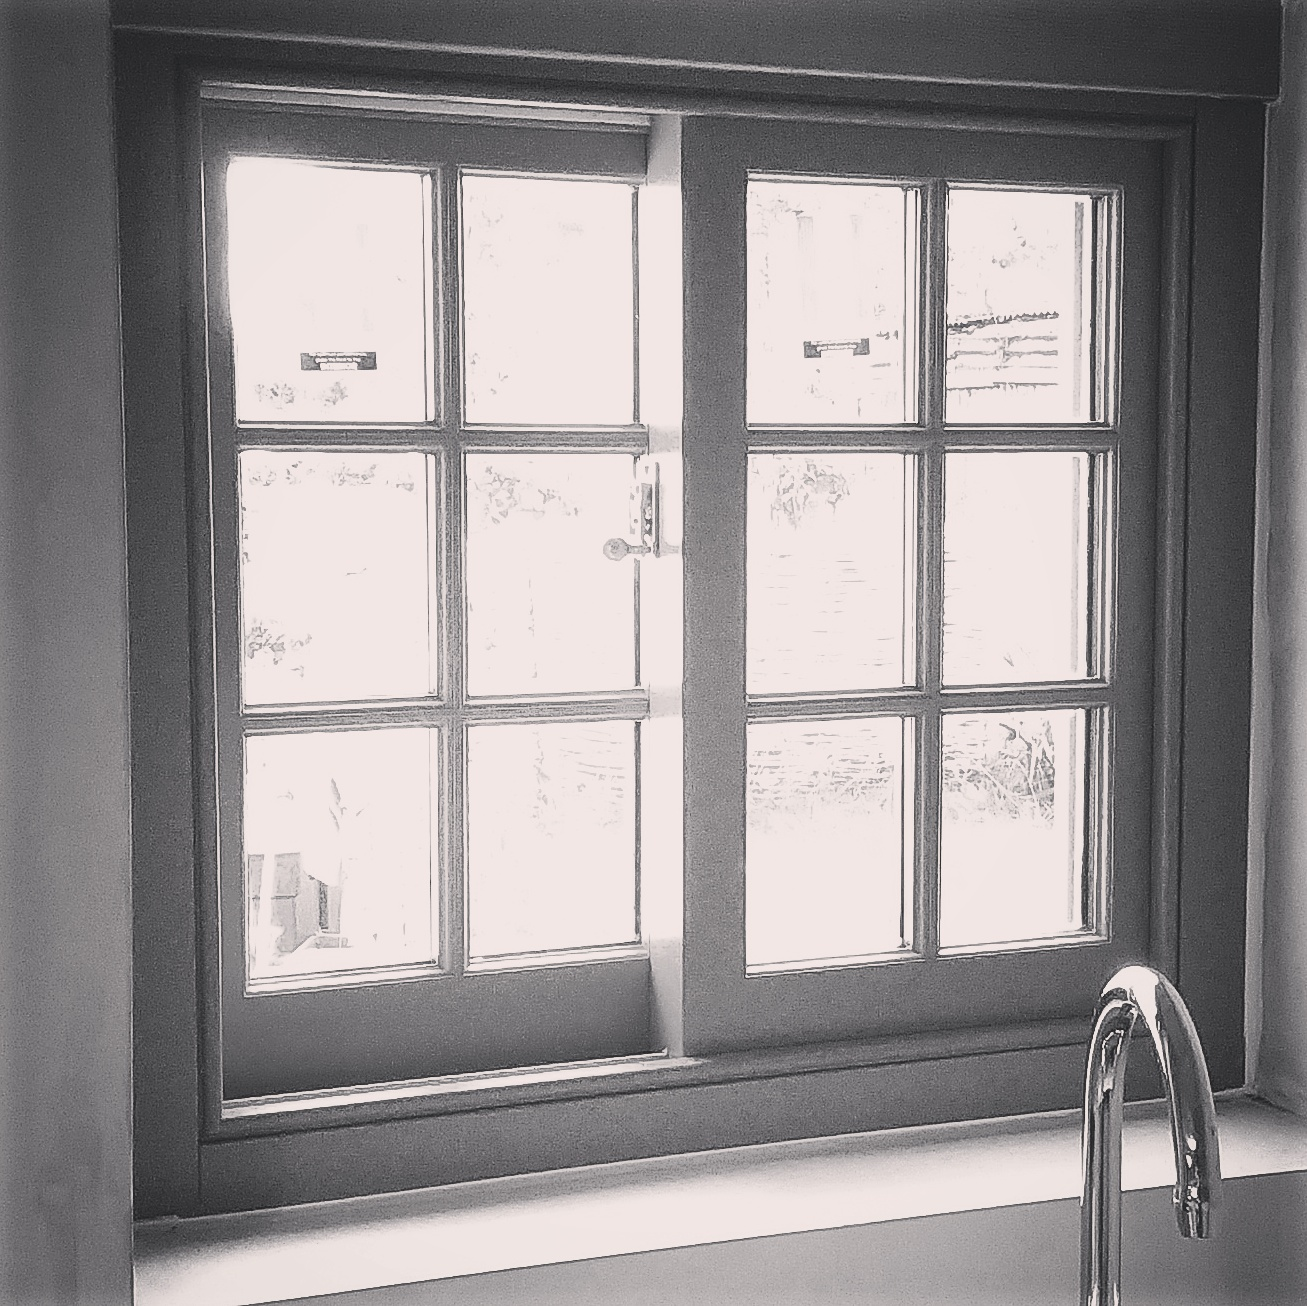 Hand crafted bespoke windows. These windows combine traditional Yorkshire sliding sash styling, with modern thermal performance.